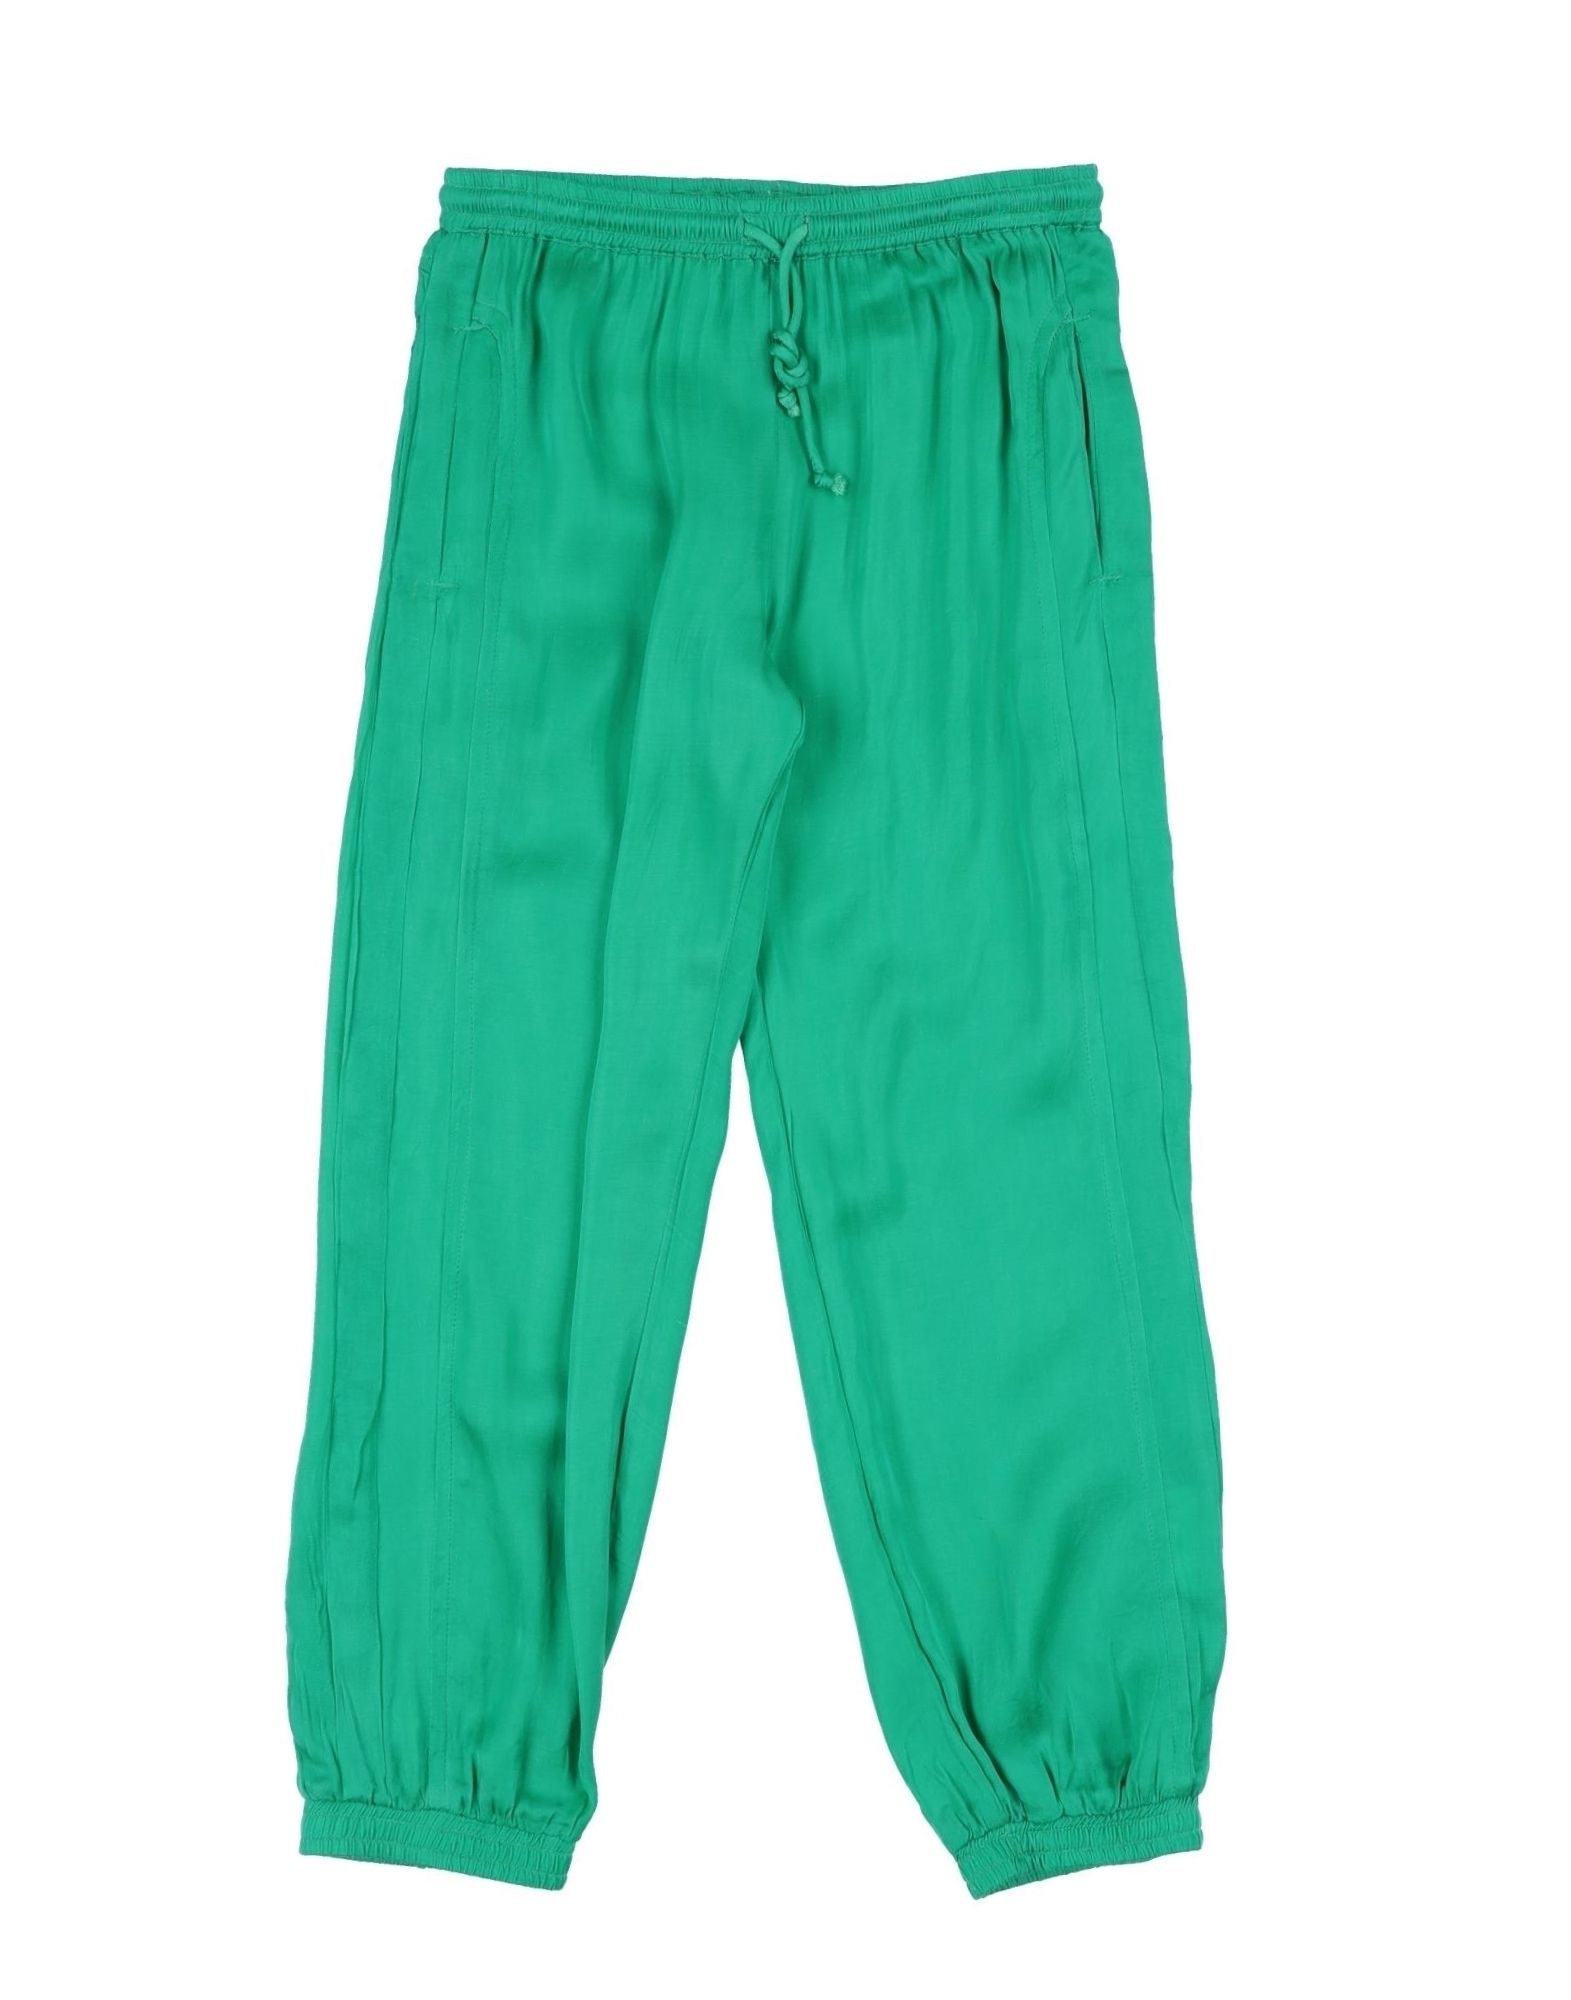 SIMPLE KIDS Casual pants. plain weave, no appliqués, basic solid color, multipockets, with elastic bottom. 100% Viscose